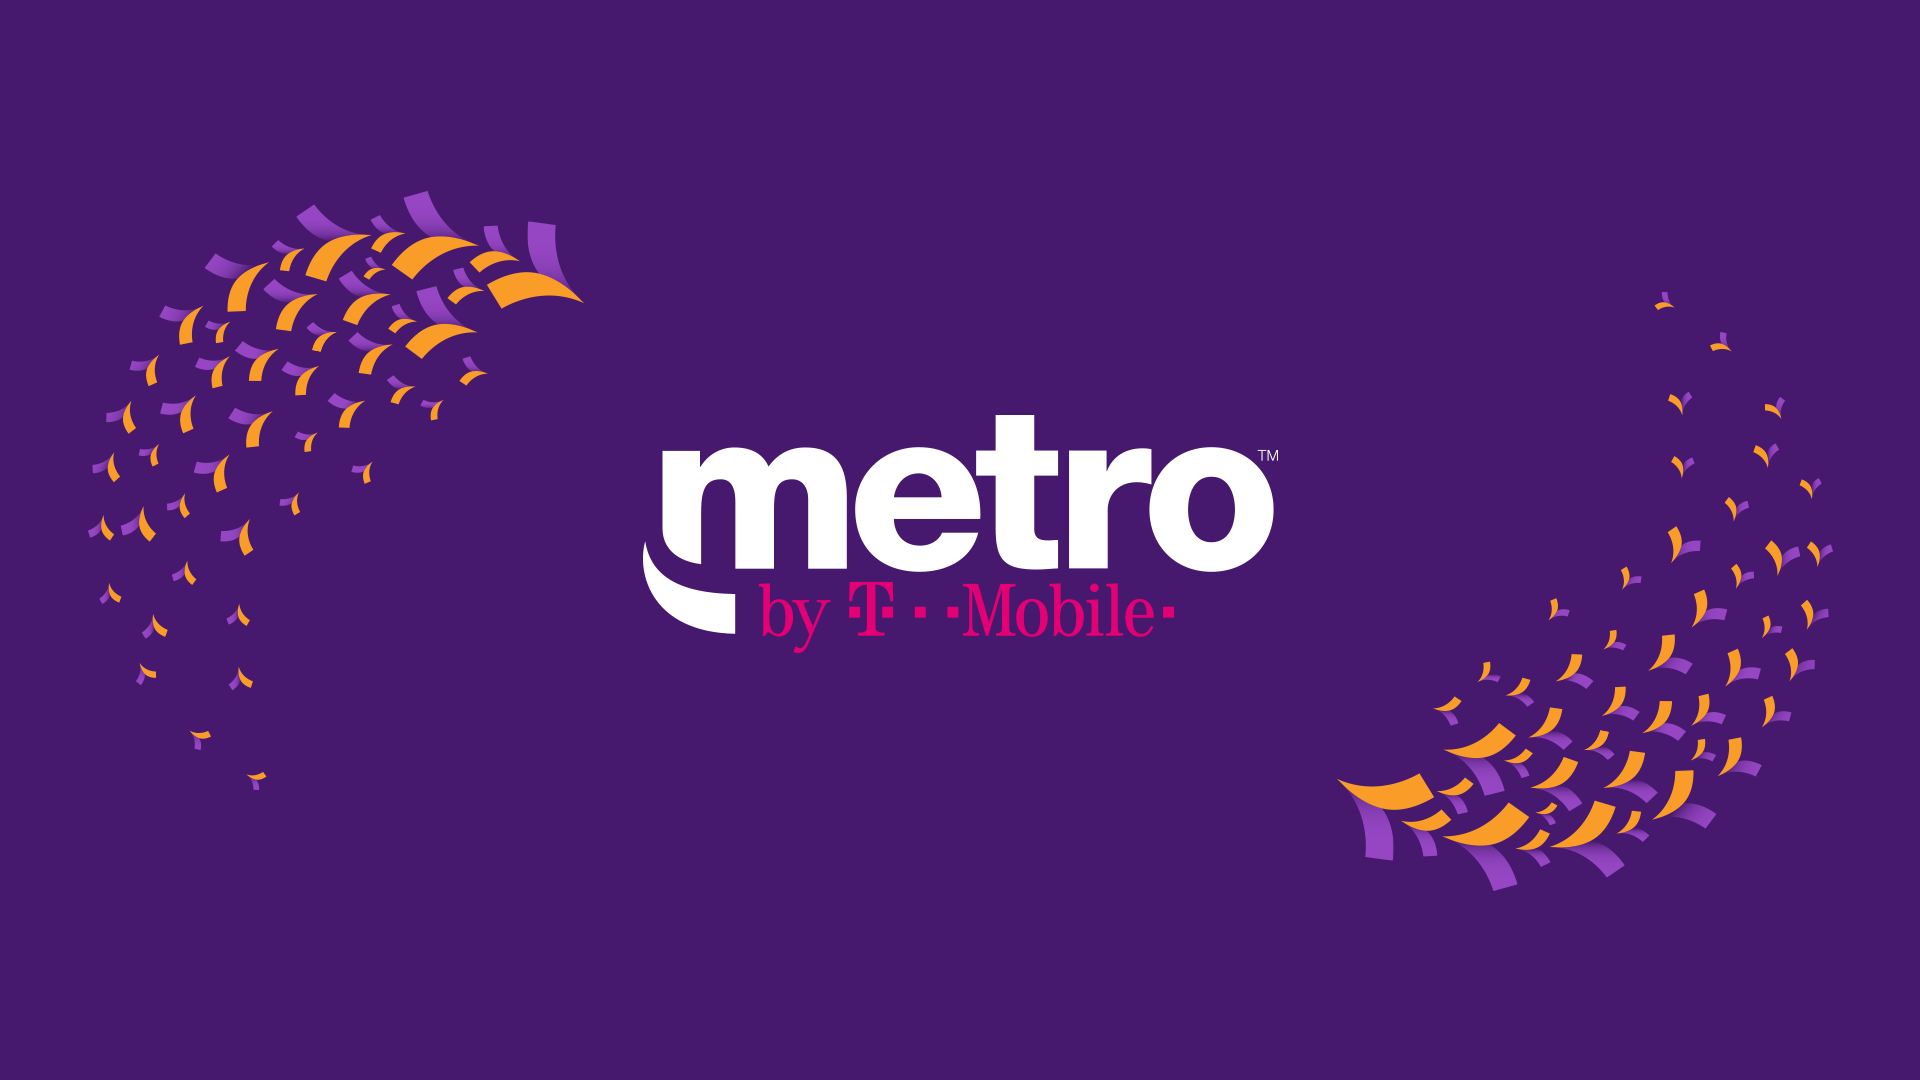 MetroPCS 7137 Knightdale Blvd Suite D, Knightdale